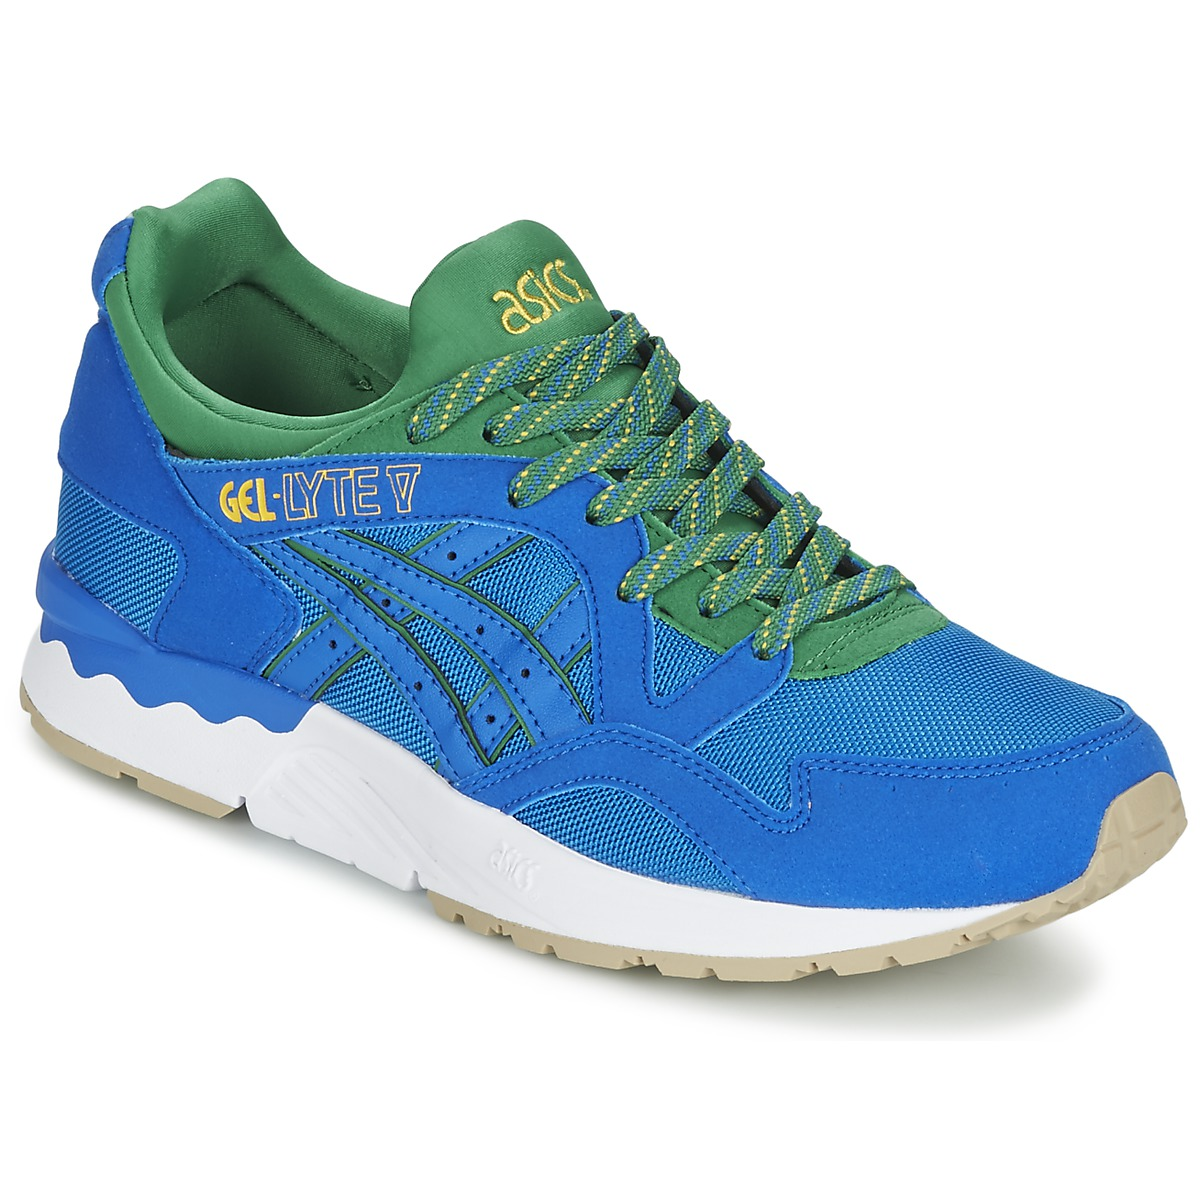 0897e74c11d Asics GEL-LYTE V BRAZIL PACK Blue Green Shoes Low top trainers best ...